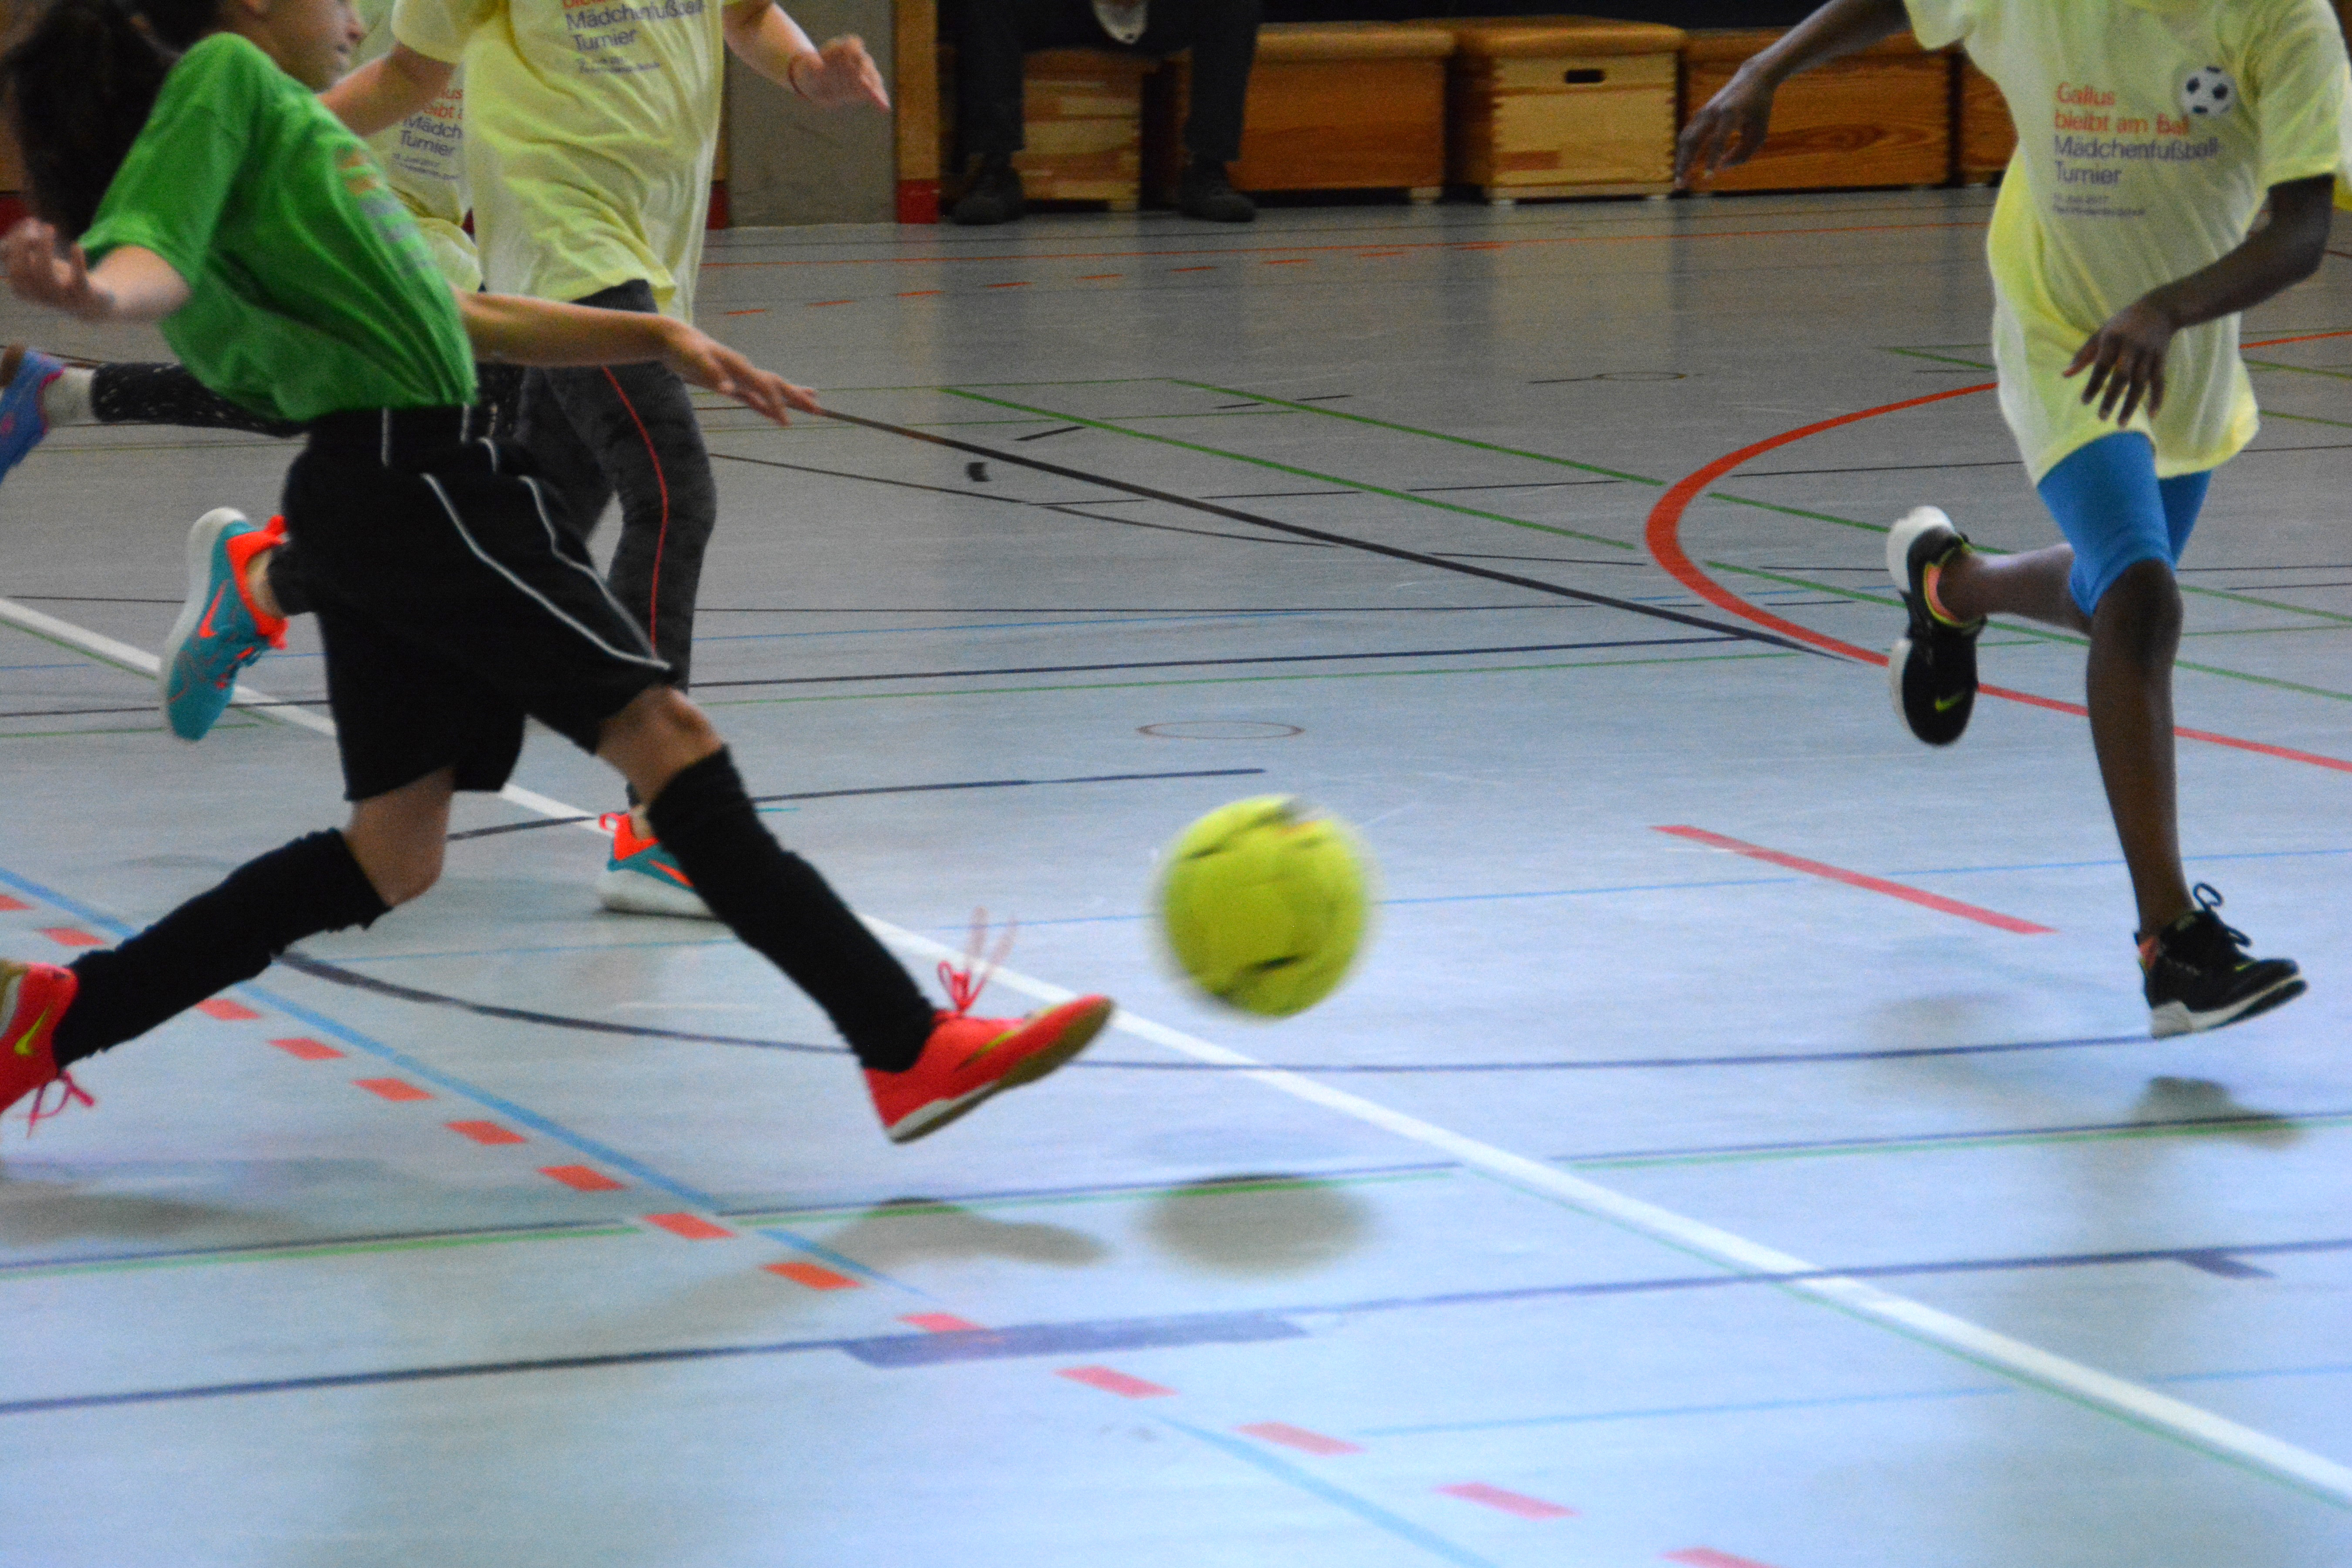 Gallus bleibt am Ball copyright Klaus Redmann